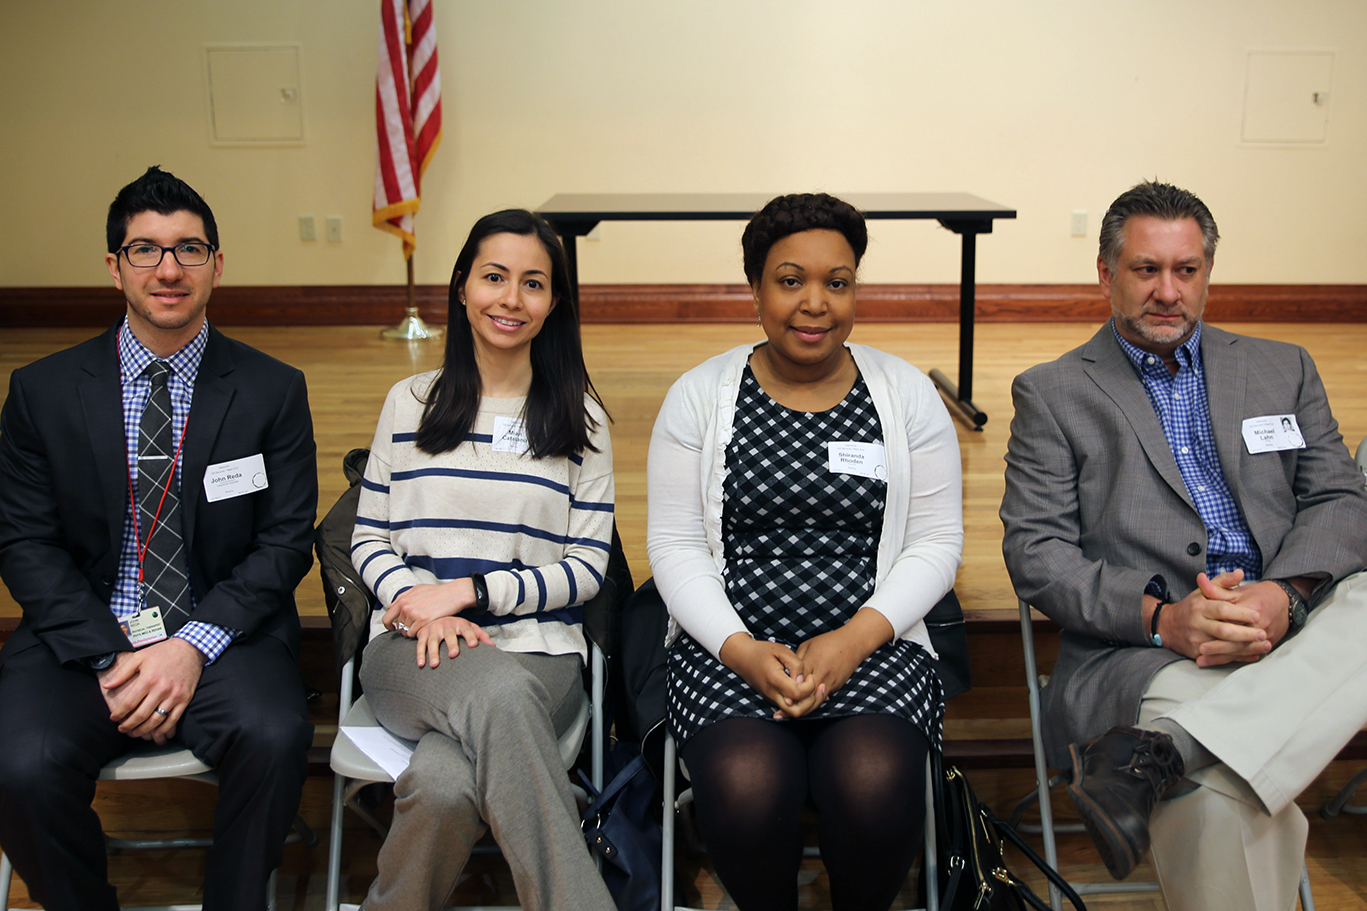 Expert panelists, from left to right: John Reda, Physical Therapist, Mian Catalano, Registered Dietician,,Shiranda Rhodes, Surgical Physician's Assistant and ER Physician, Michael Lahn, MD.  Photo by Deborah Karson